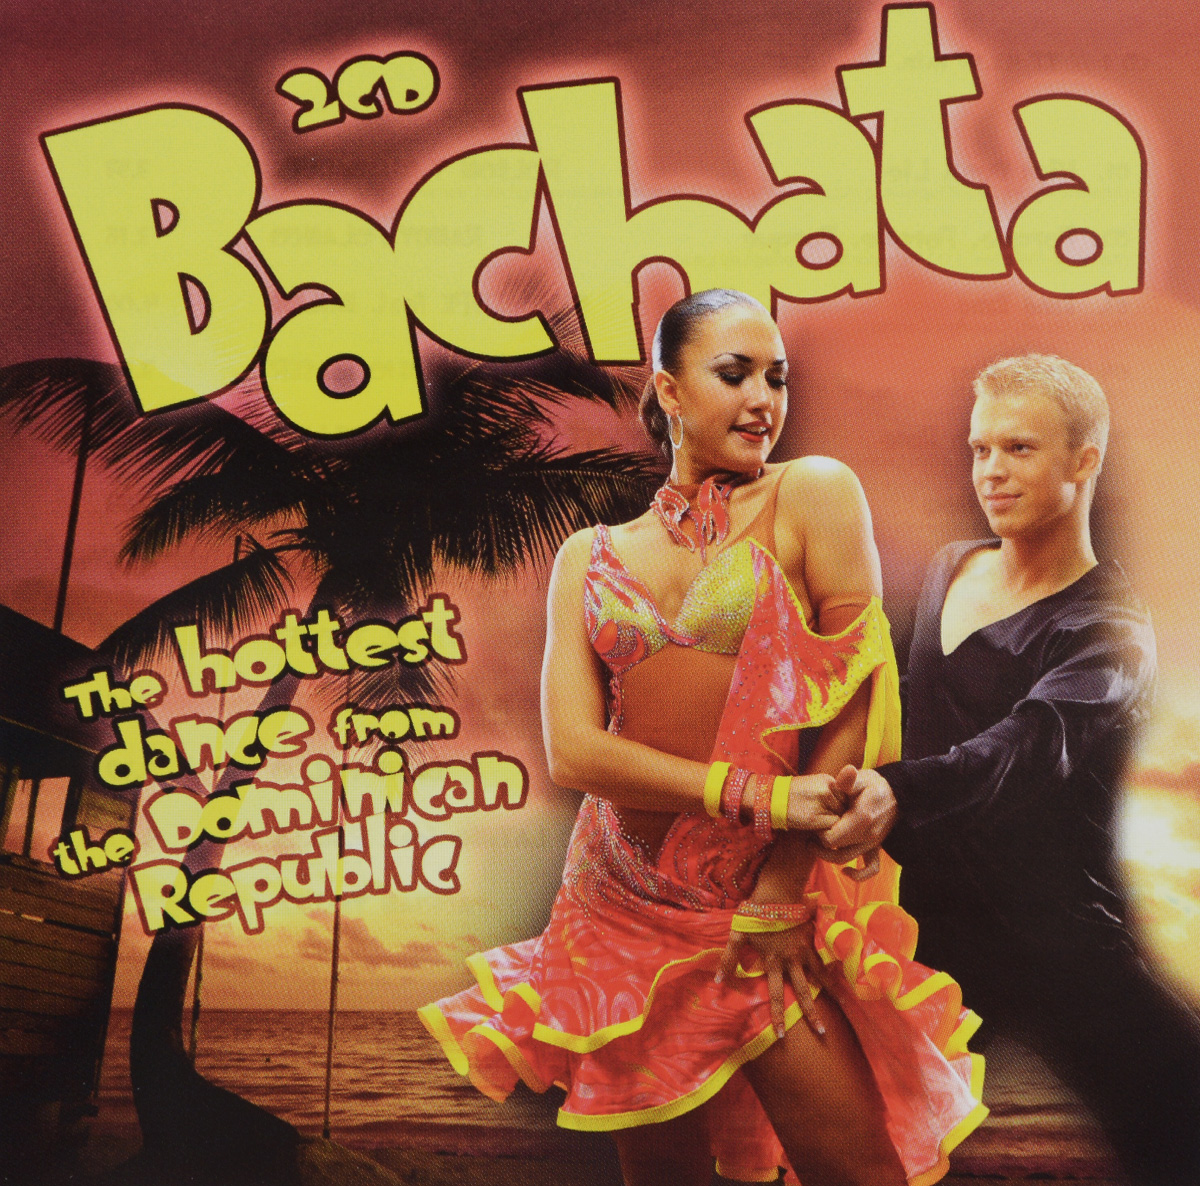 Bachata. The Hottest Dance Form Dominican Republic (2 CD)